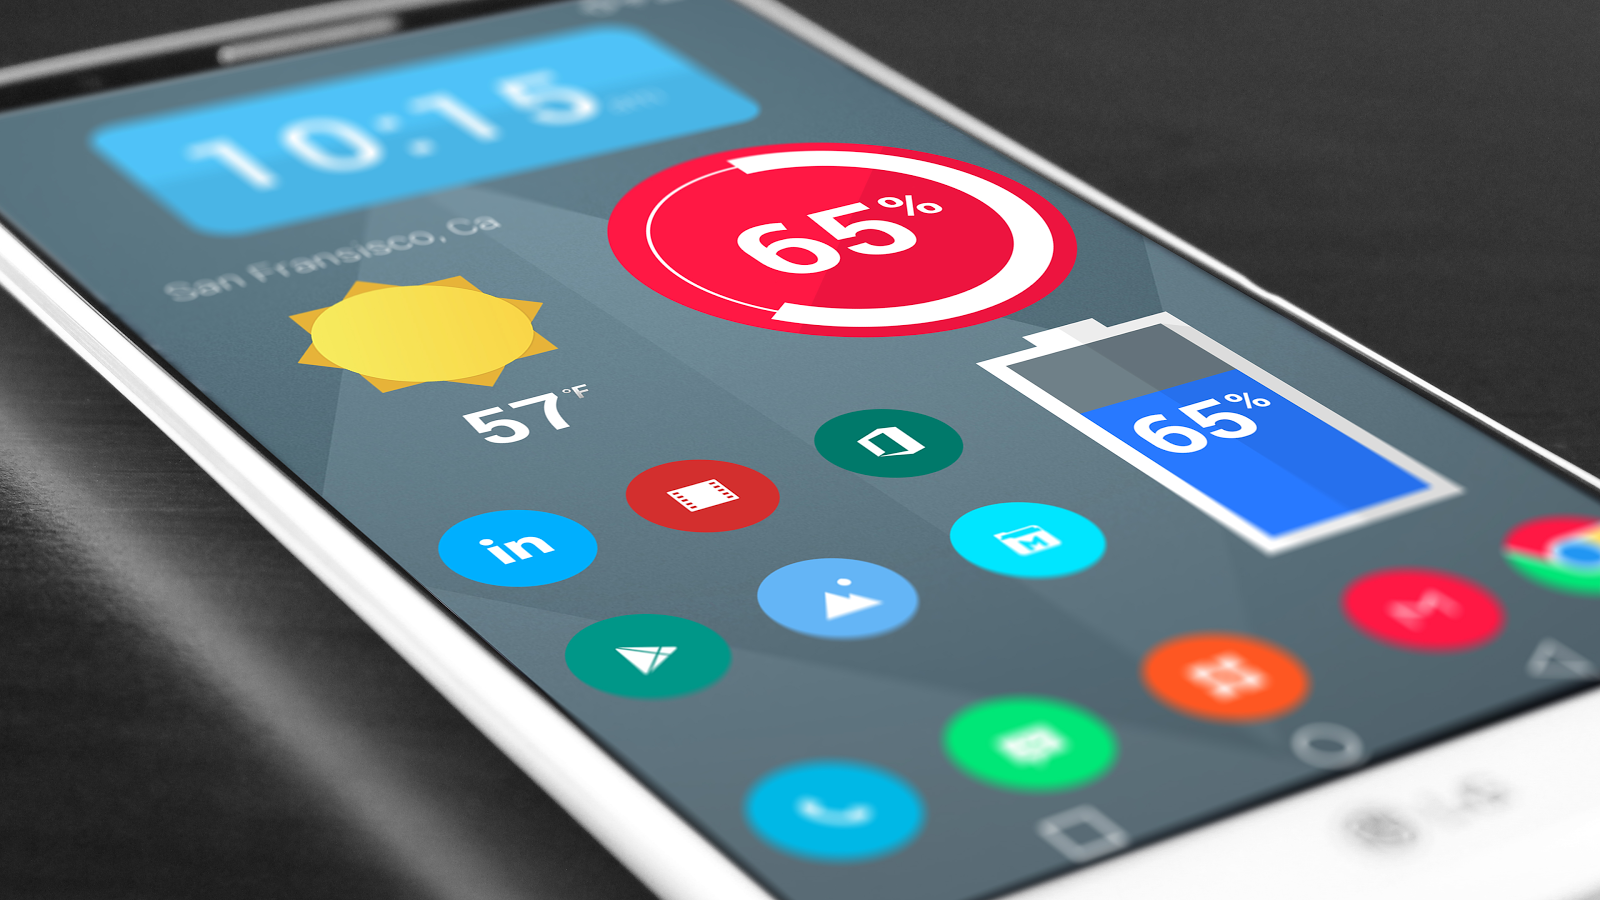 Material Things - Colorful Icon Pack (Pro Version) Screenshot 9